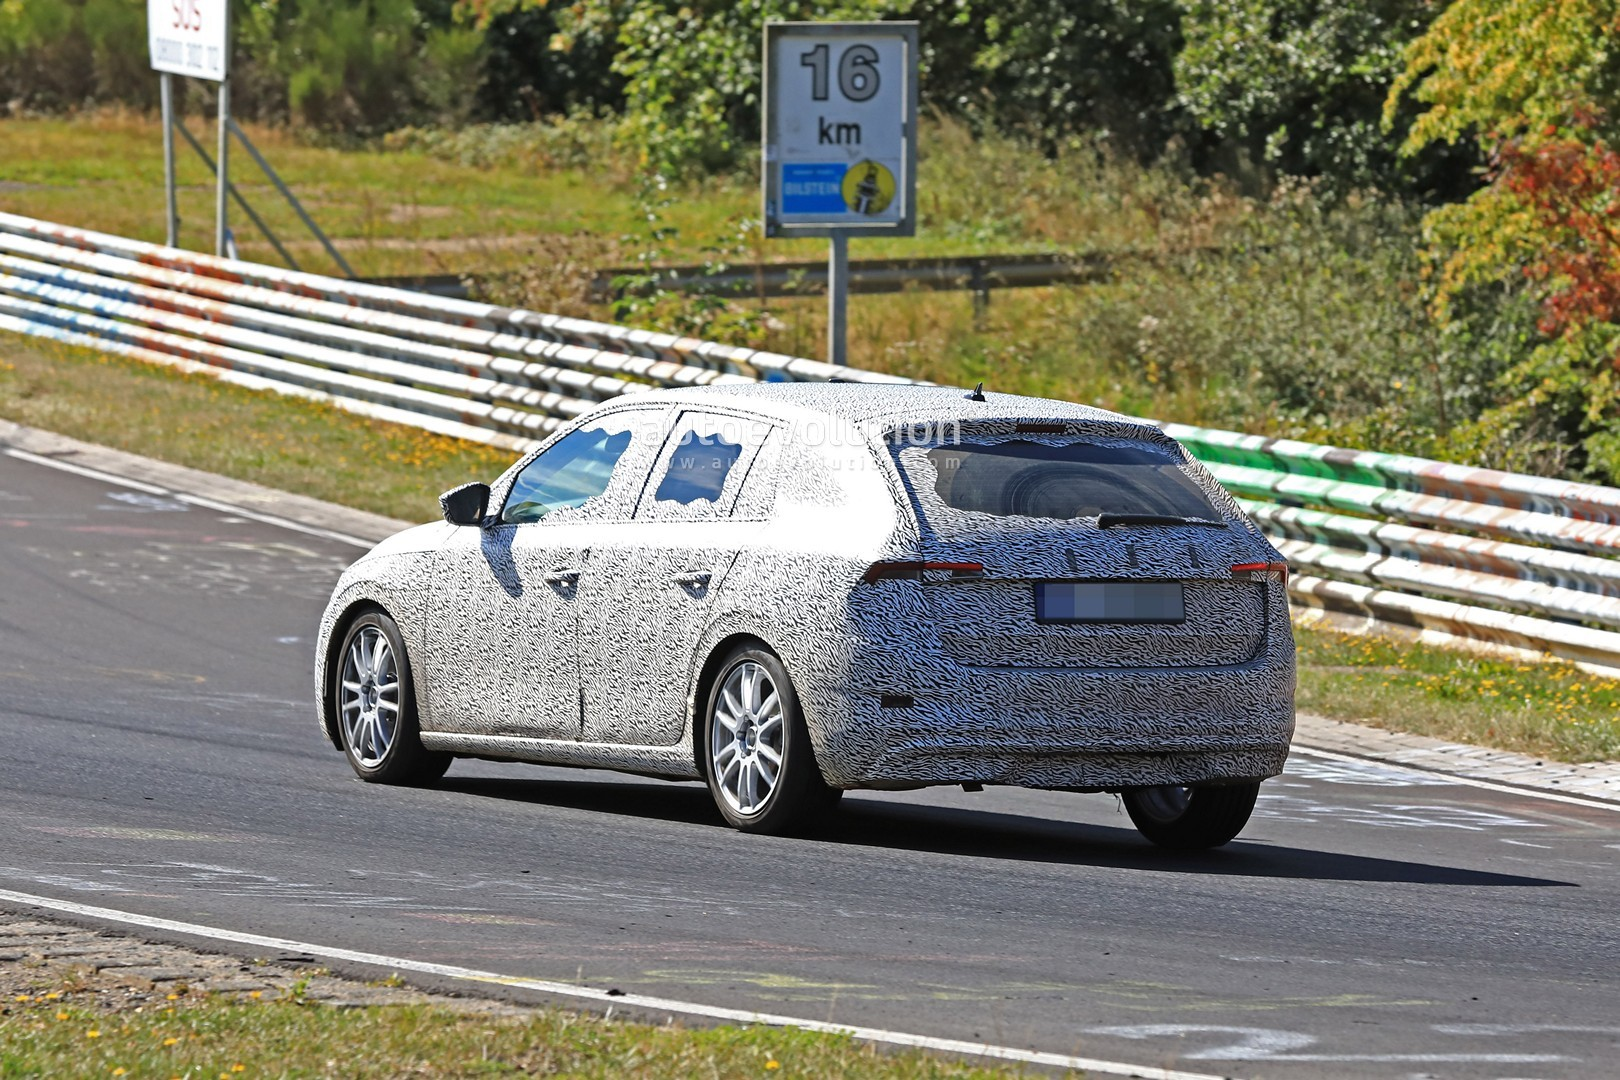 2020 Skoda Rapid Might Get RS Version, Looks Like Vision RS at Nurburgring - autoevolution